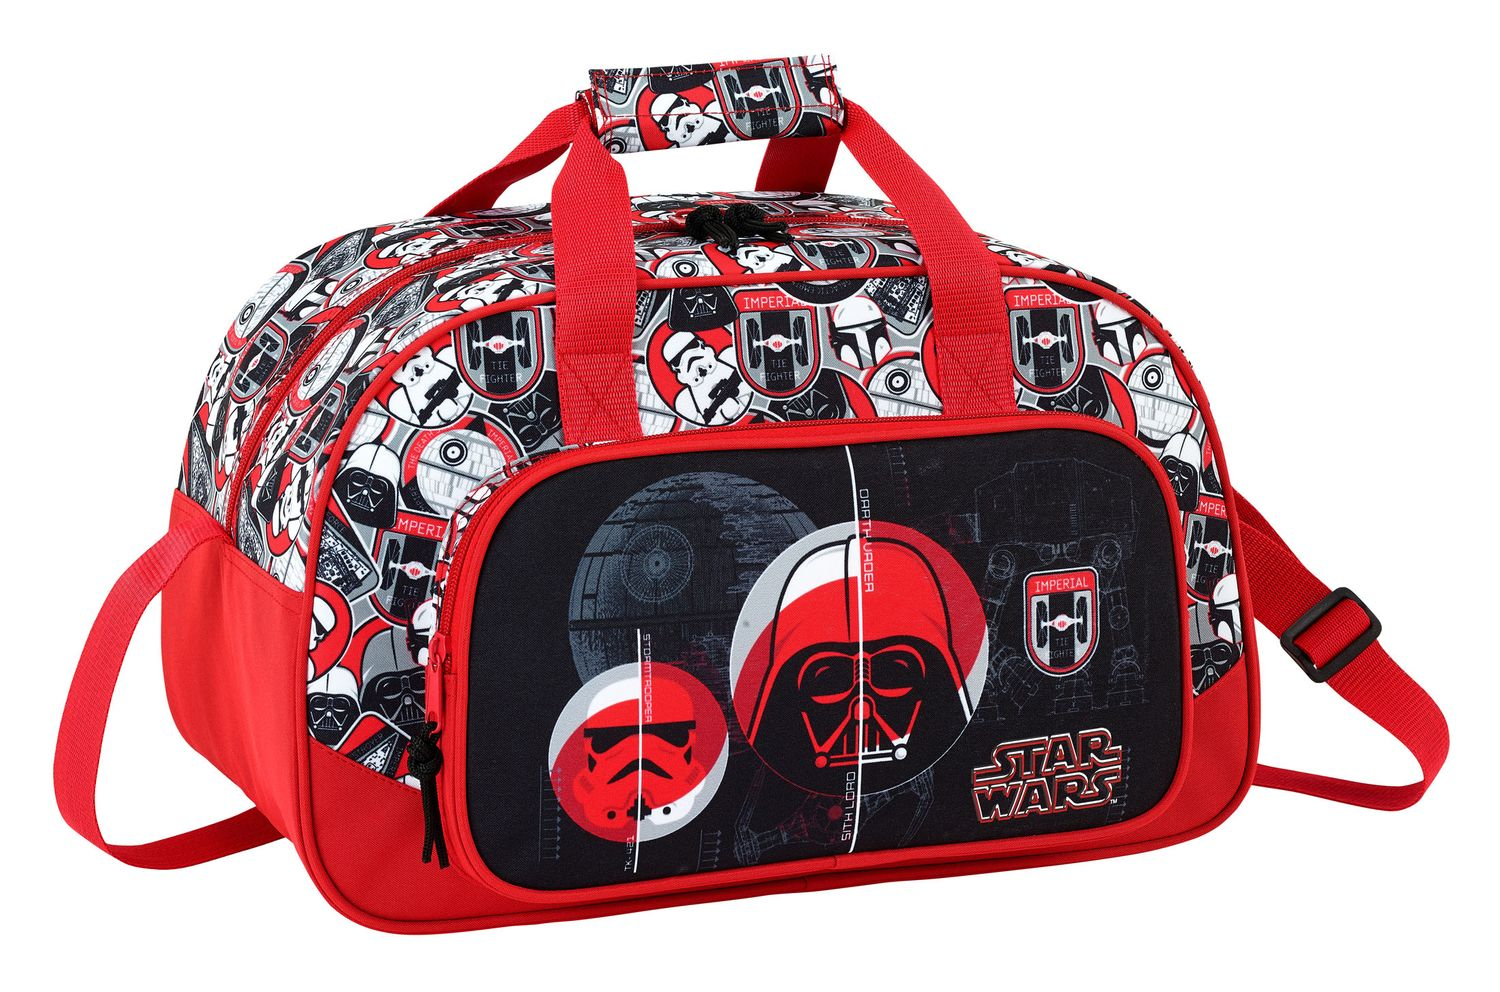 Star Wars VIII Galactic Mission Sports Travel Bag 40 cm – image 1